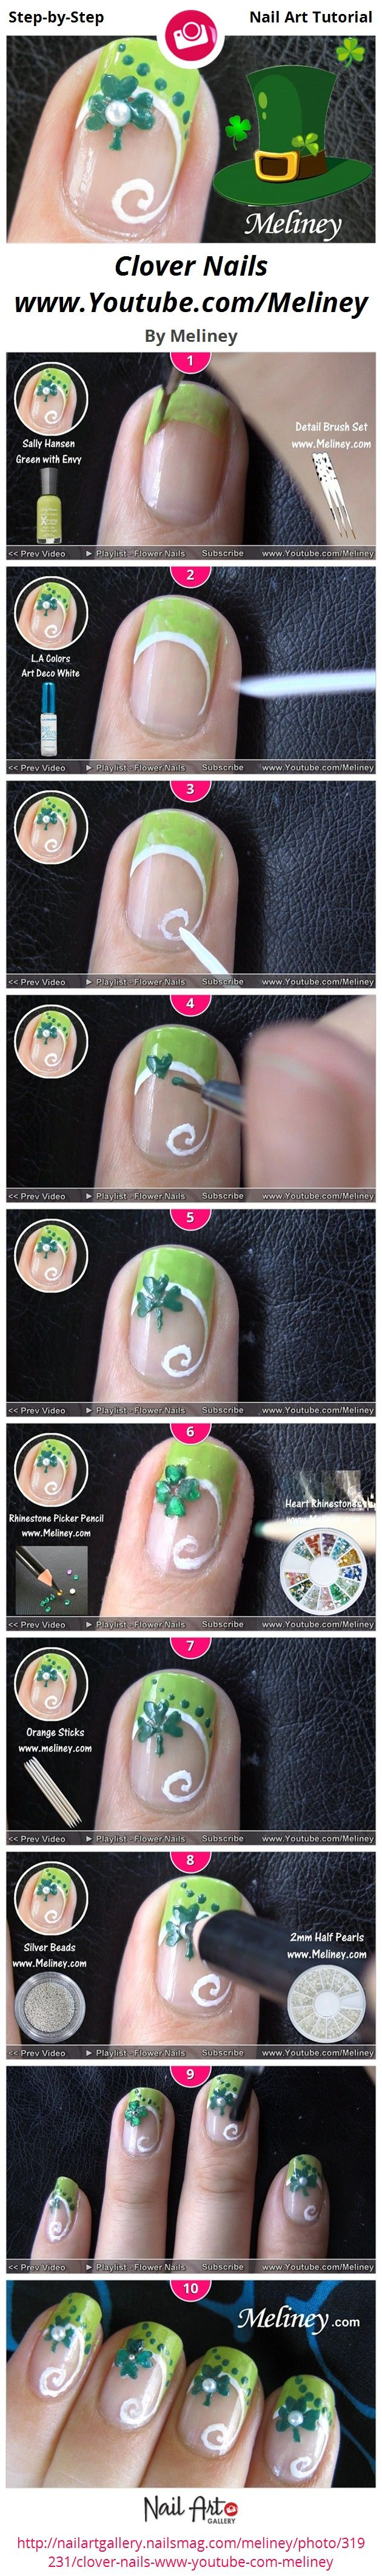 51 best St. Patricks Day Nail Art images on Pinterest | Nails ...